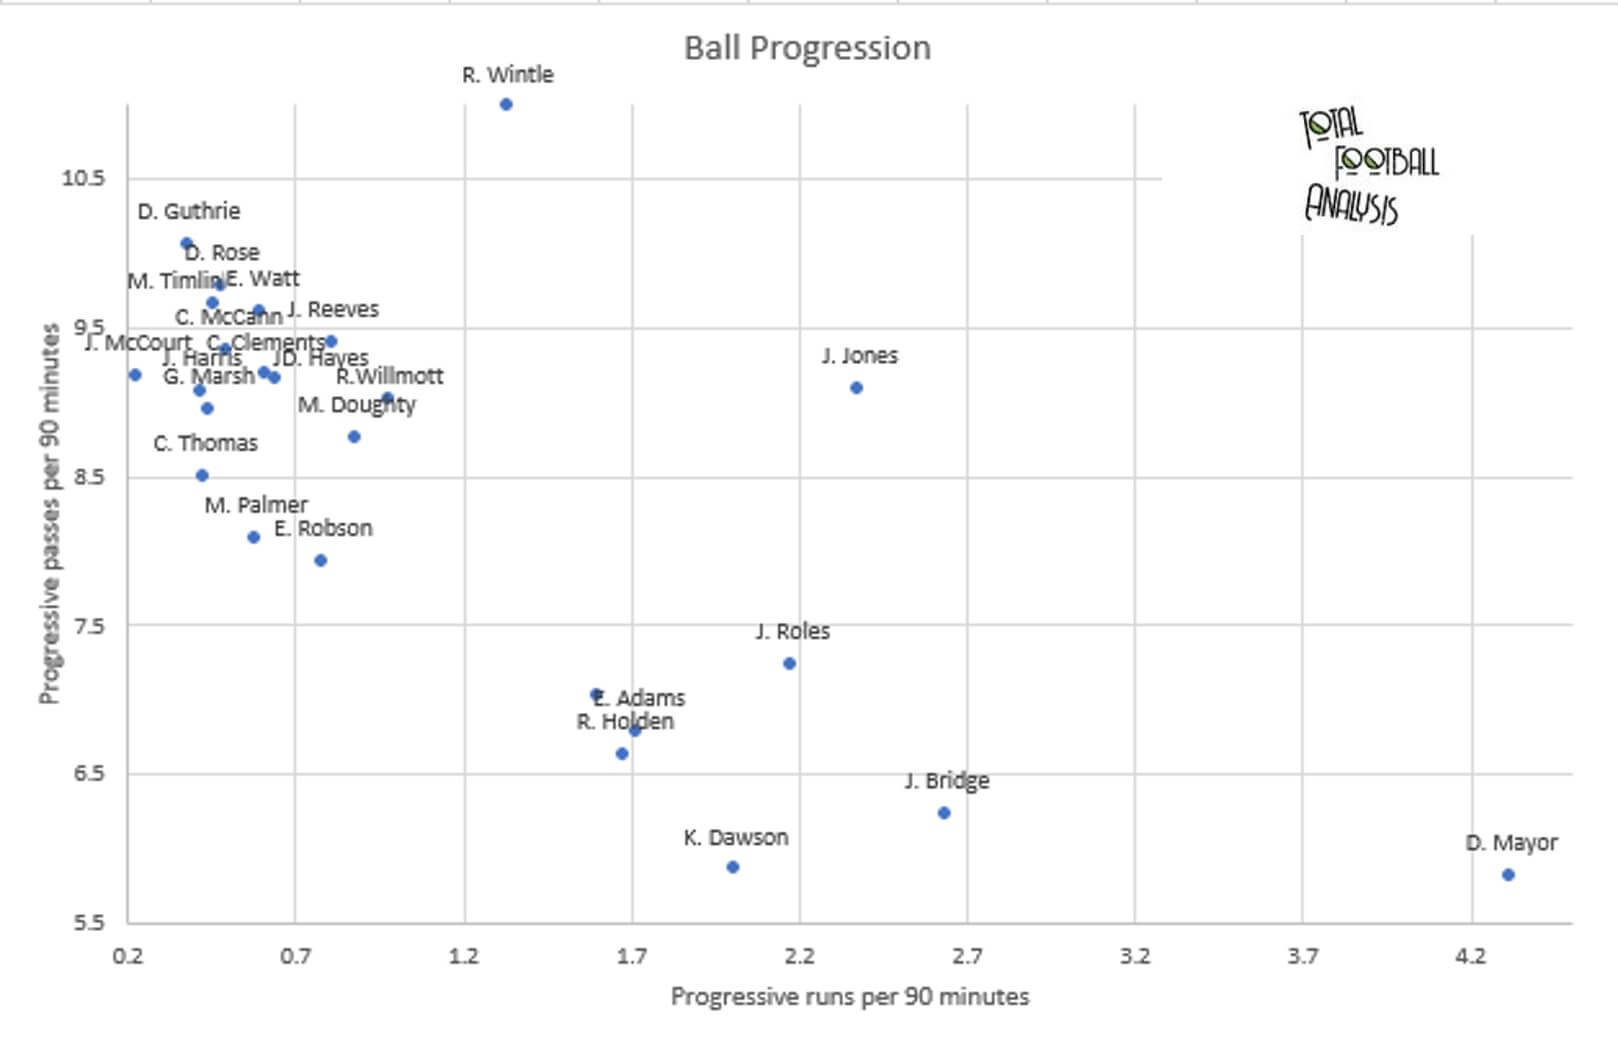 Finding the best creative central midfielders in League Two - data analysis